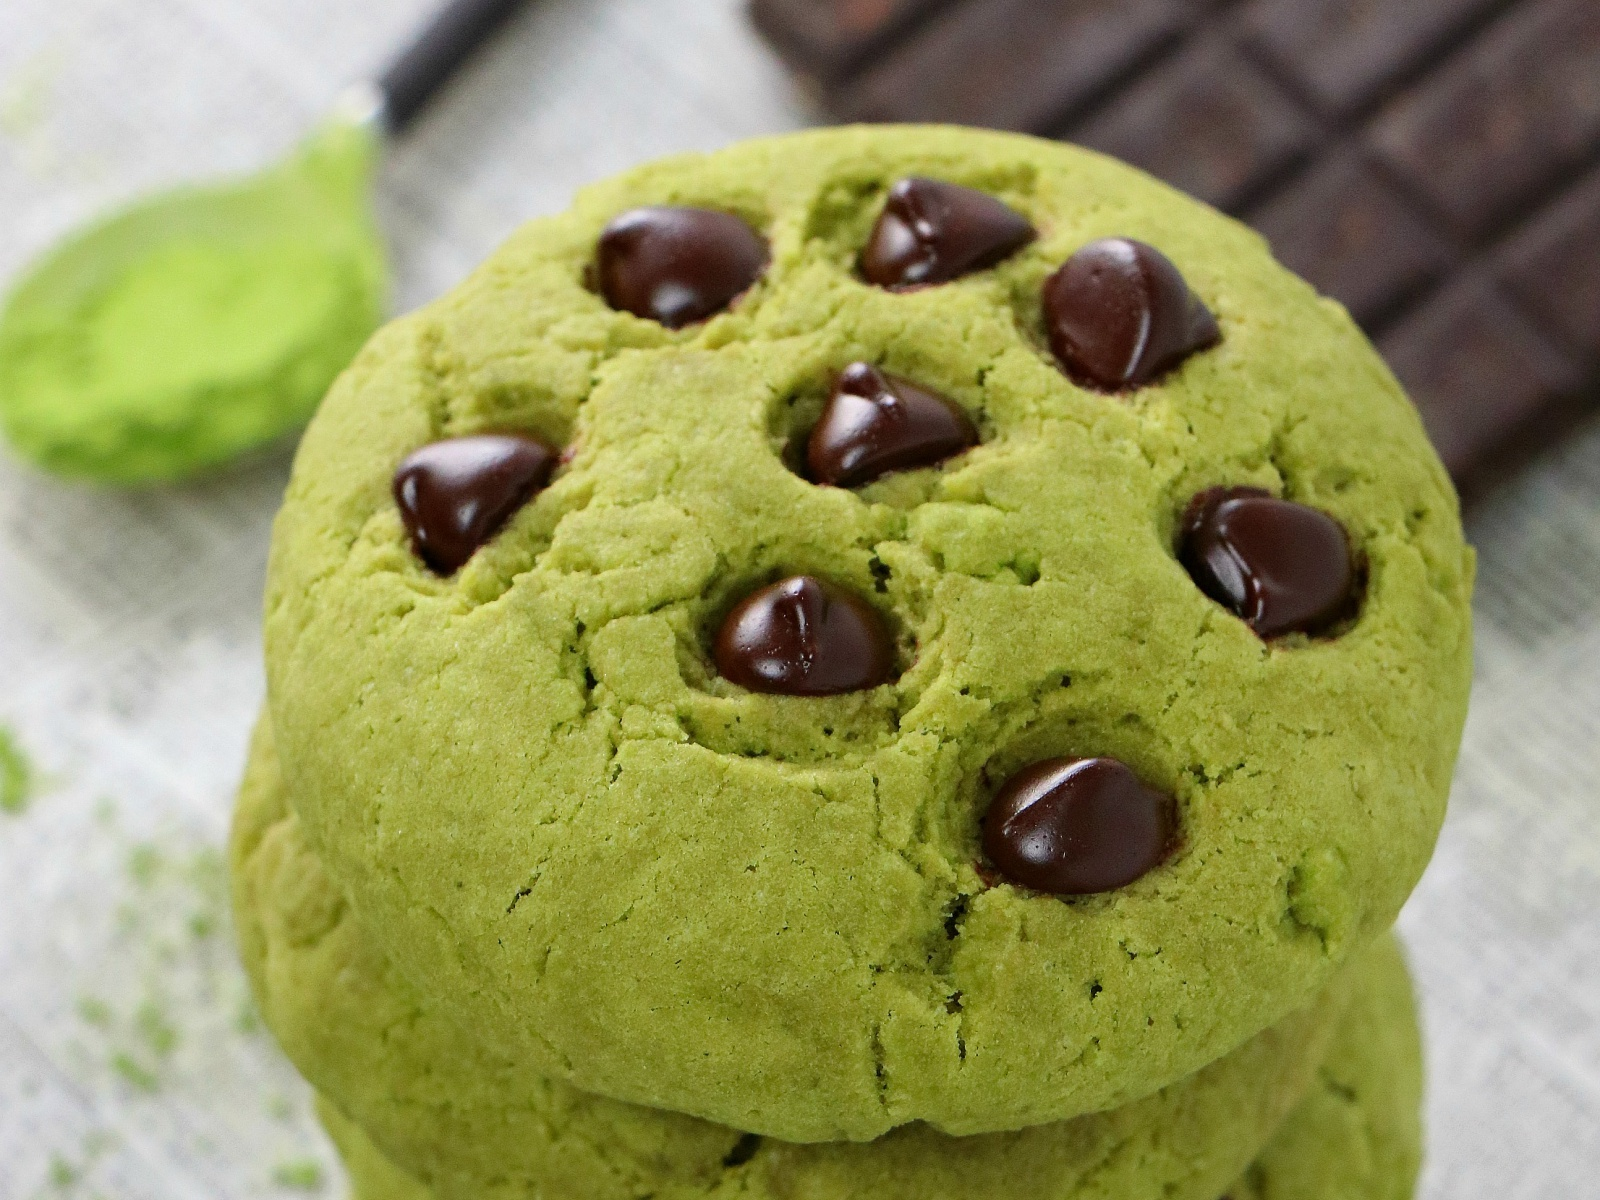 Fluffy matcha flavored cookies with chocolate chips